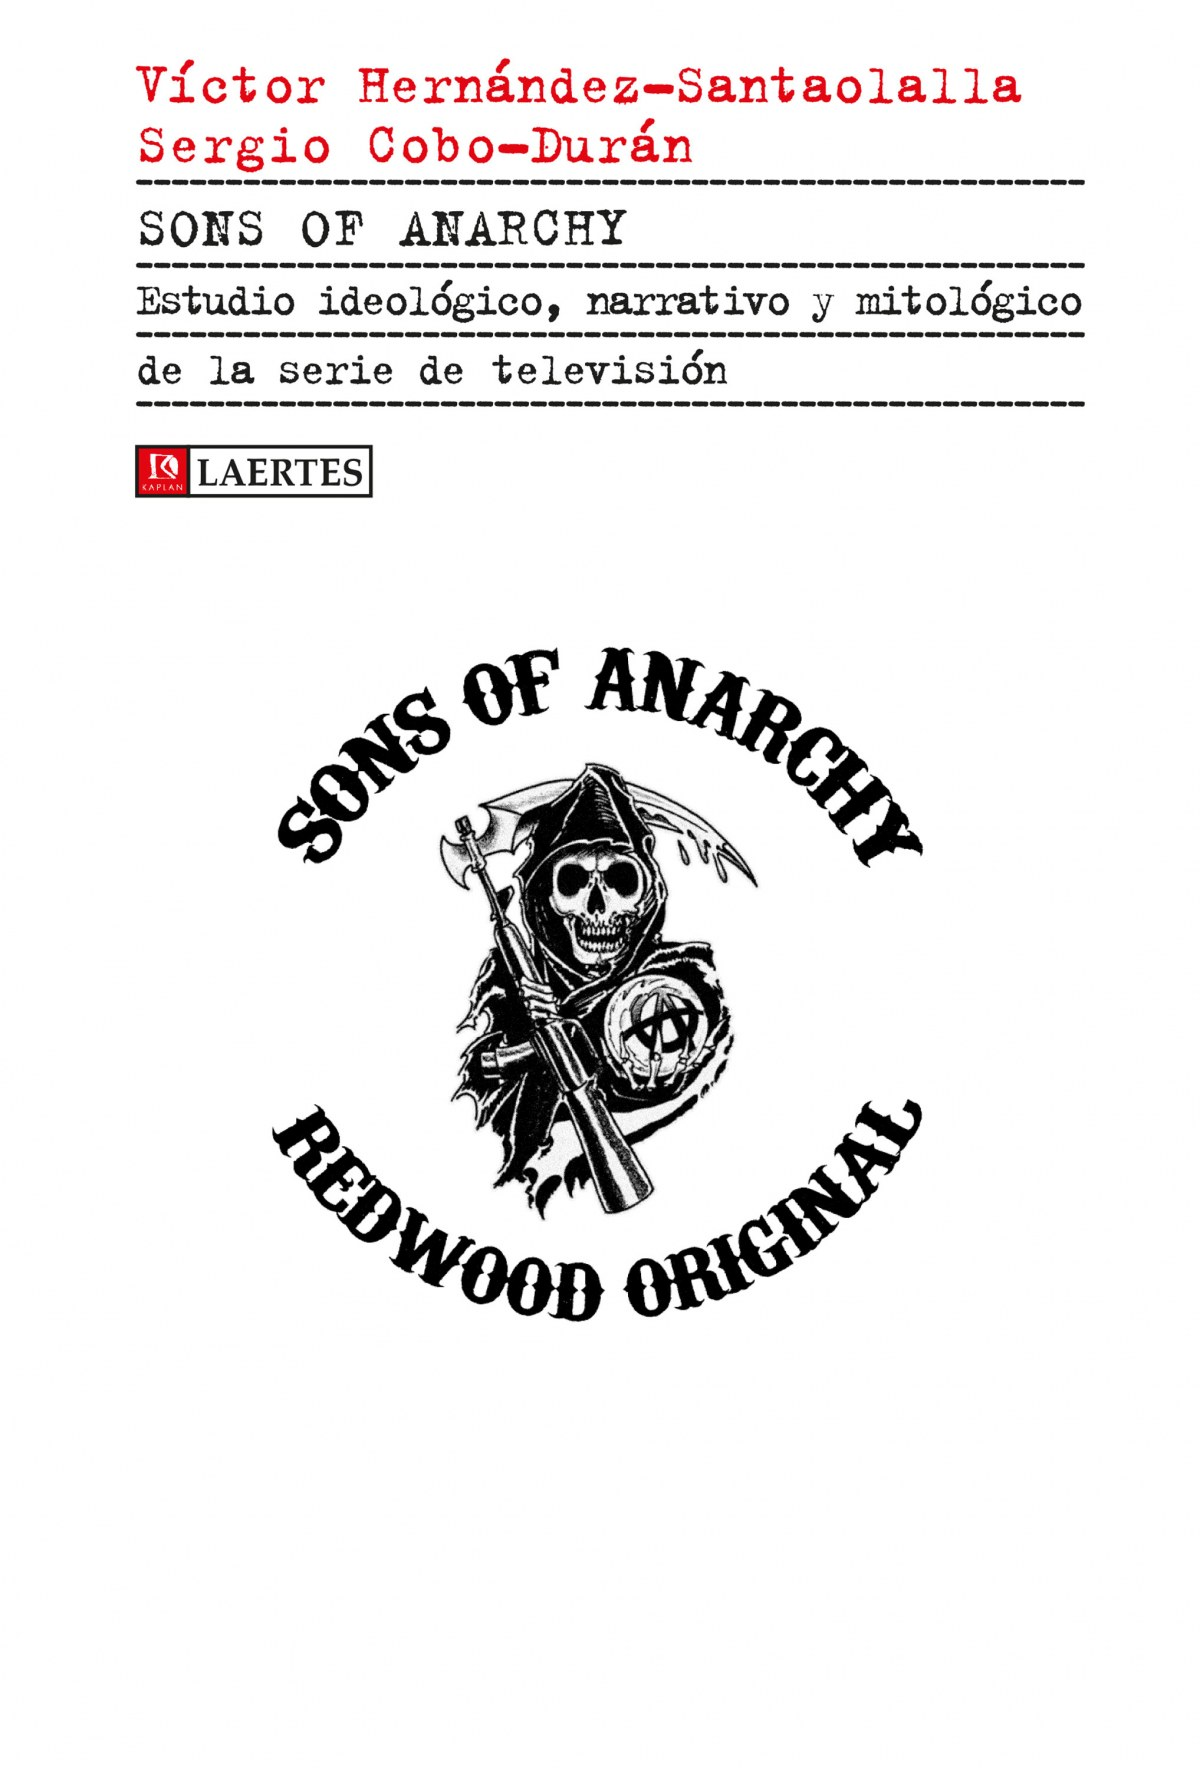 SONS OF ANARCHY Estudio ideológico, narrativo y mitológico de serie te - Vv.Aa.